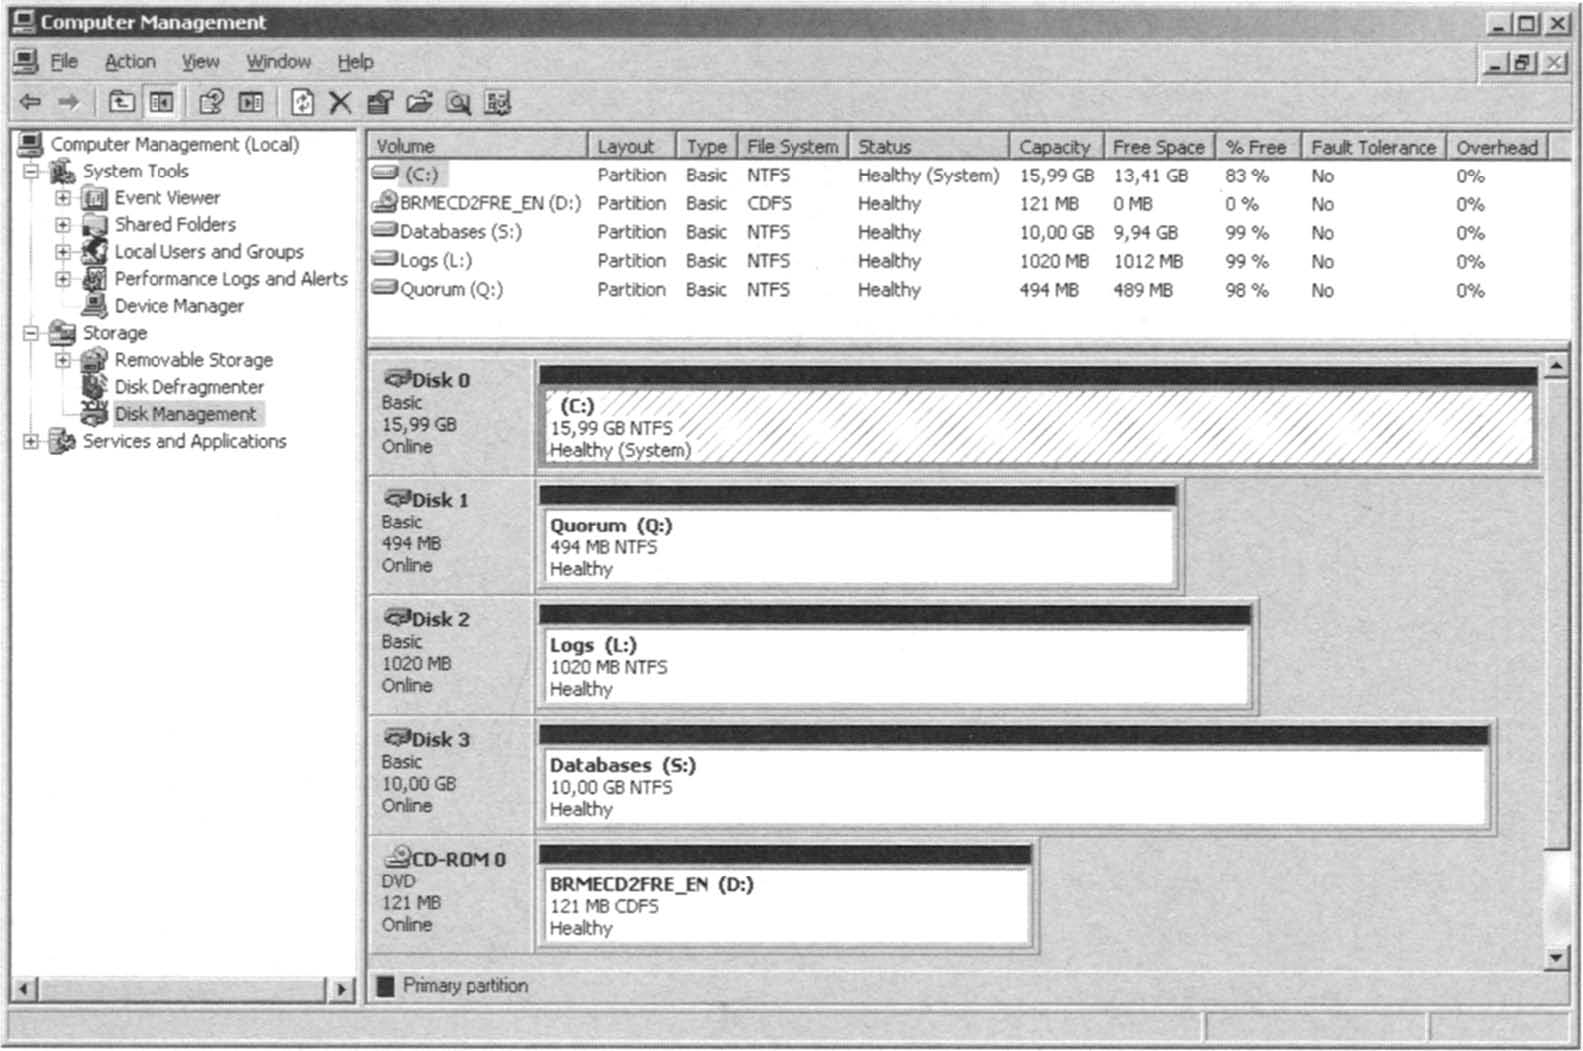 Partitioning the Shared Disks and Assigning Drive Letters